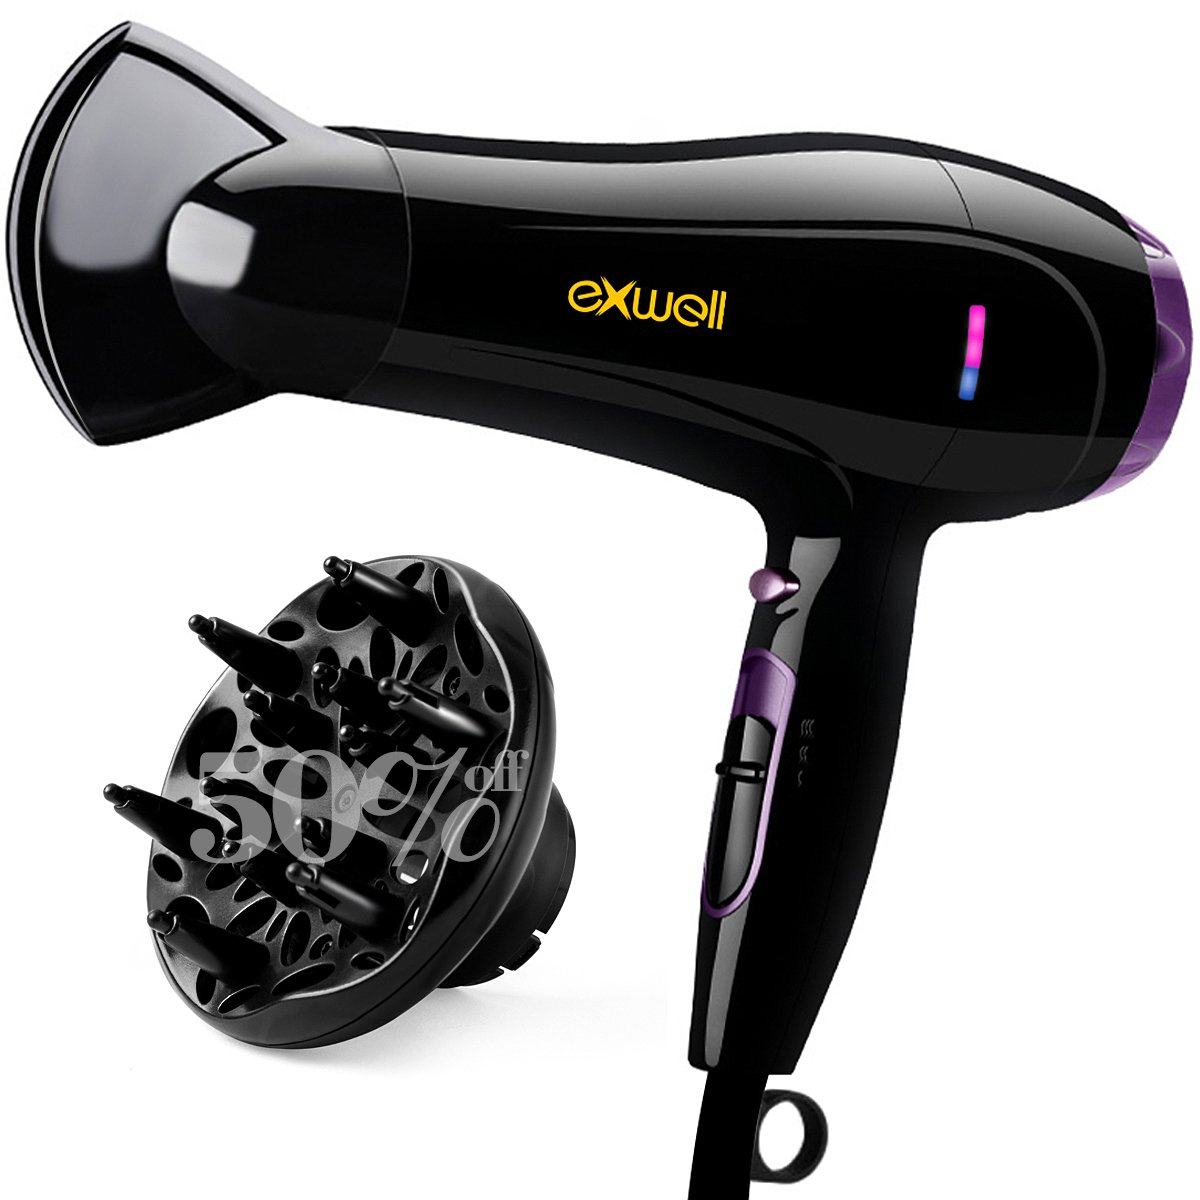 Hair Dryer with Diffuser, Exwell 1875W Lower Noise 75dB Professional Blow Dryer with 2 Speed and 3 Heat Settings,Fast Drying Hair Dryer for Home Travel purple